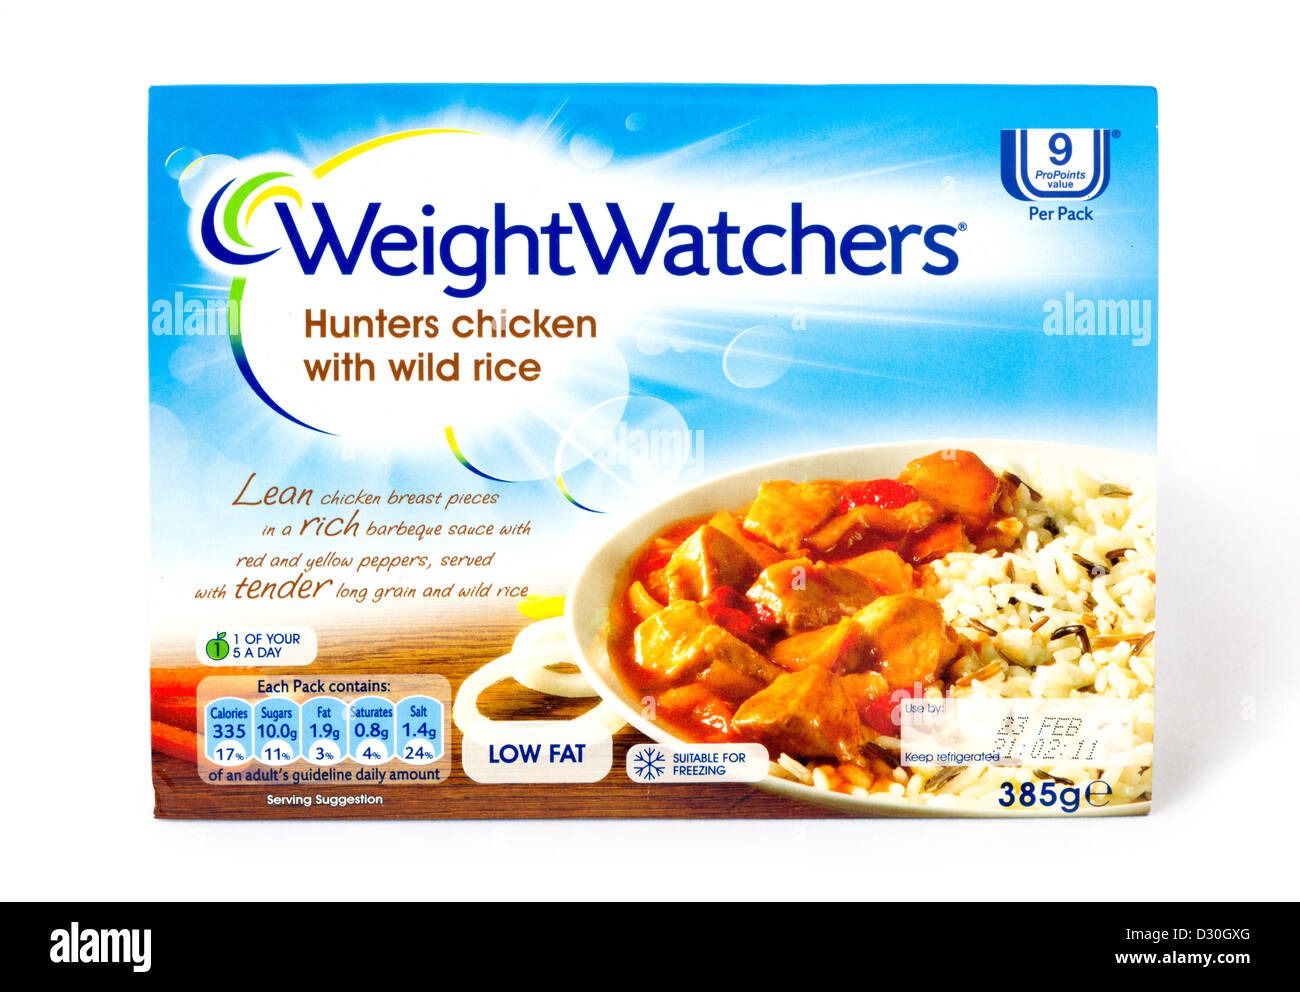 Weight Watchers ready meal - Stock Image